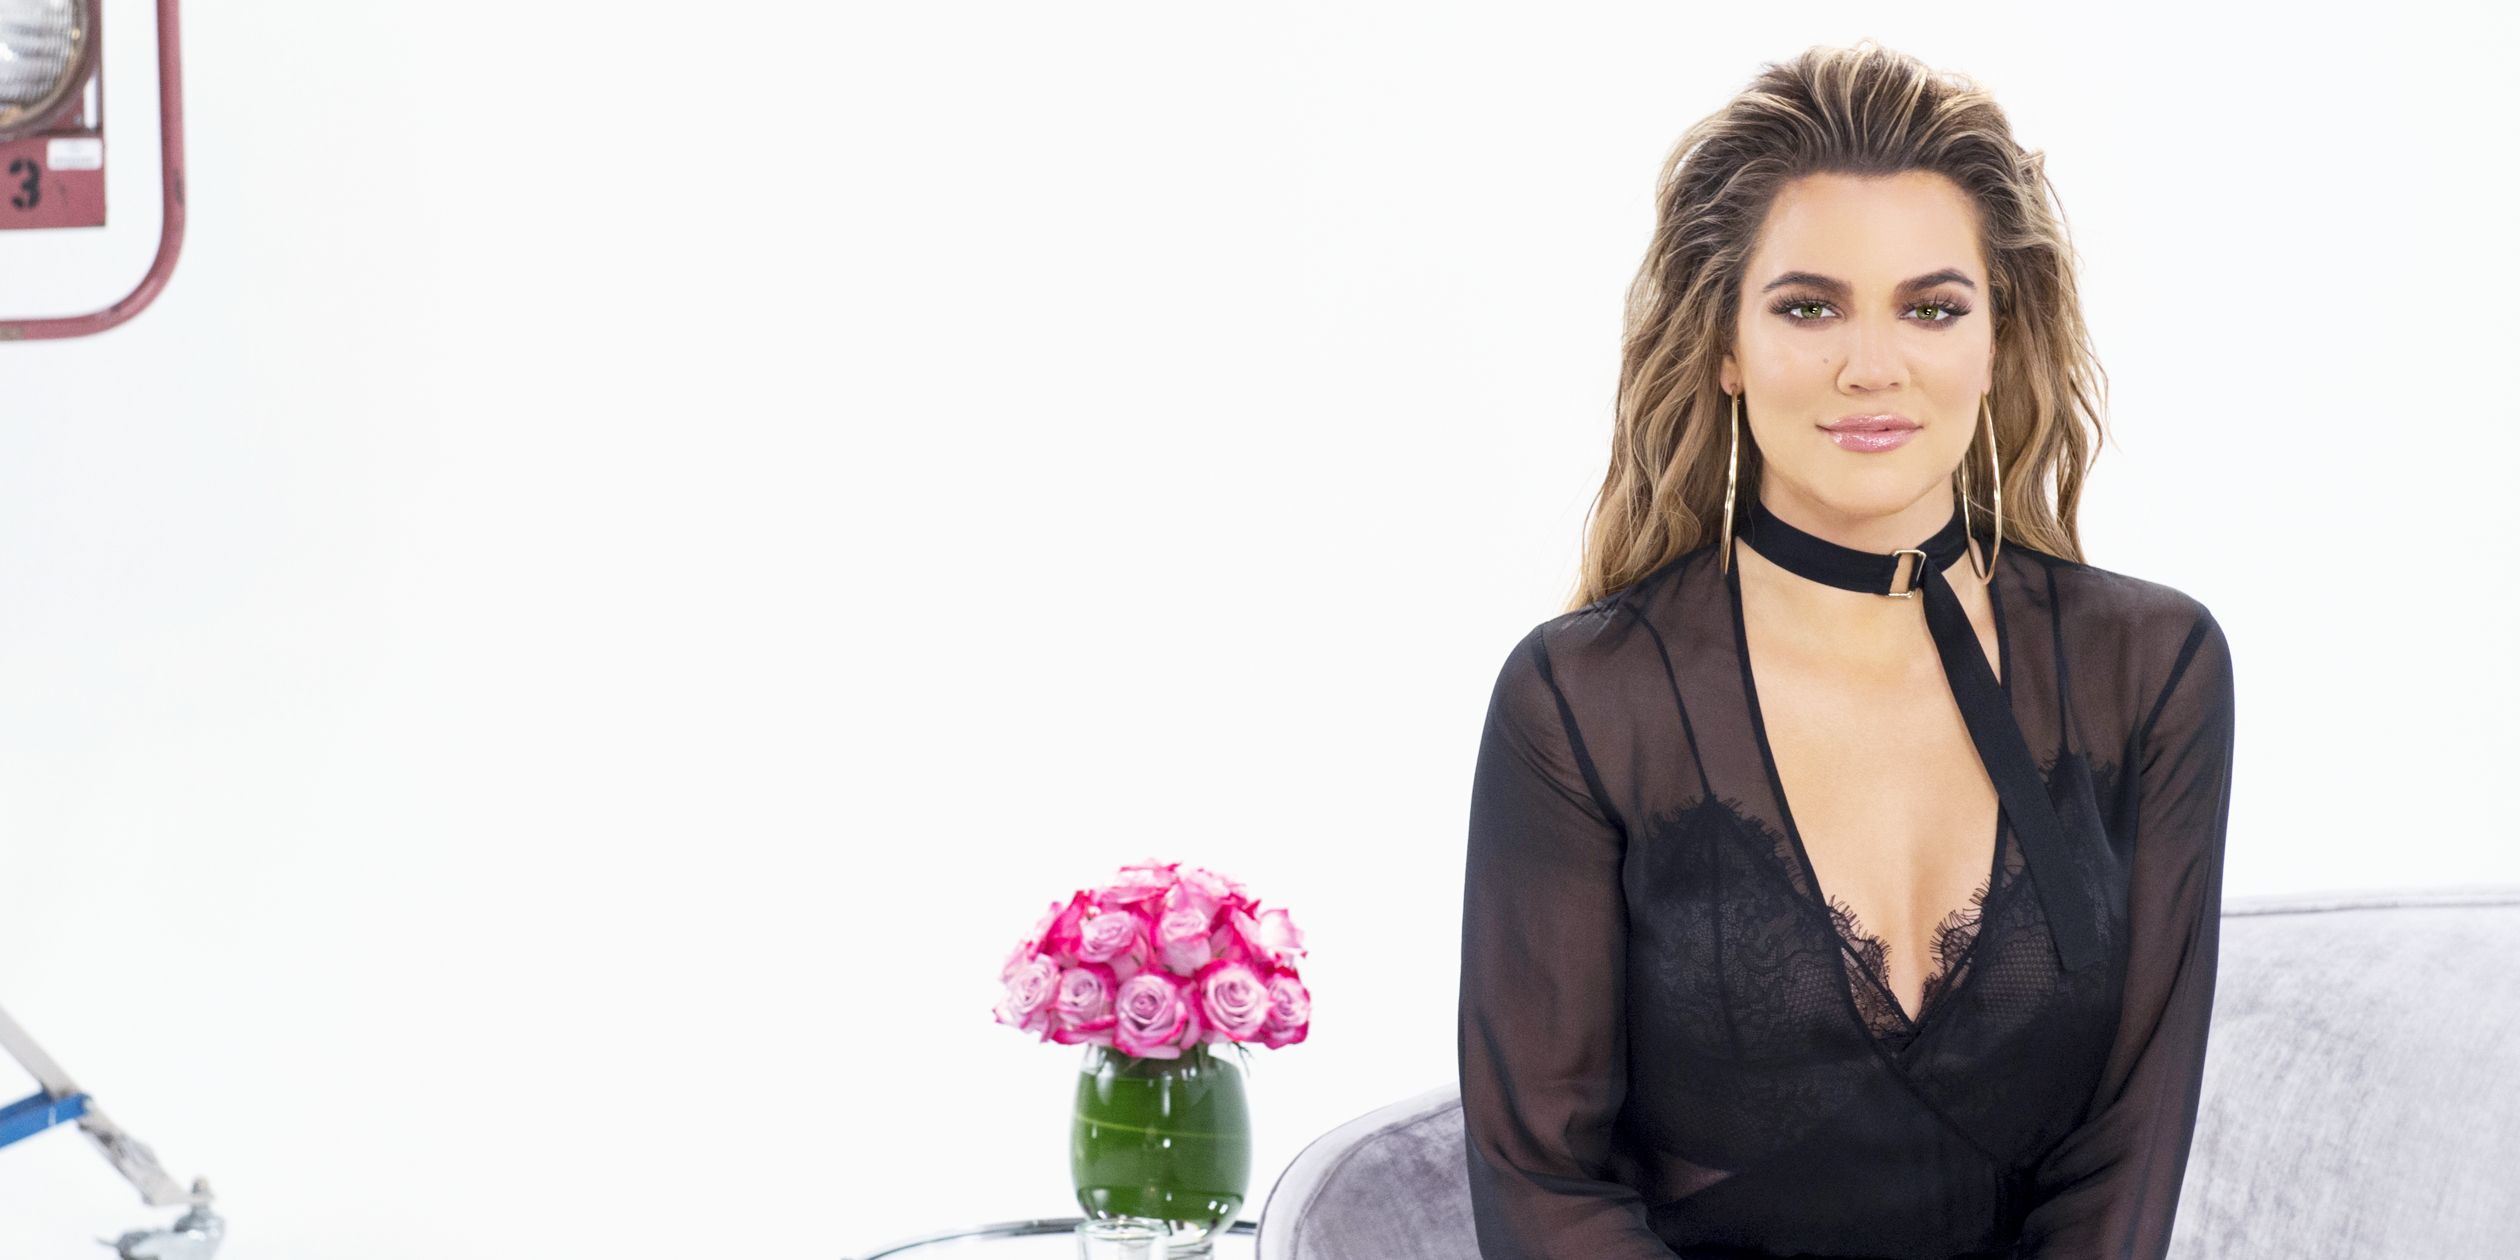 """Khloe Kardashian shares cryptic post about being """"brutally broken"""""""